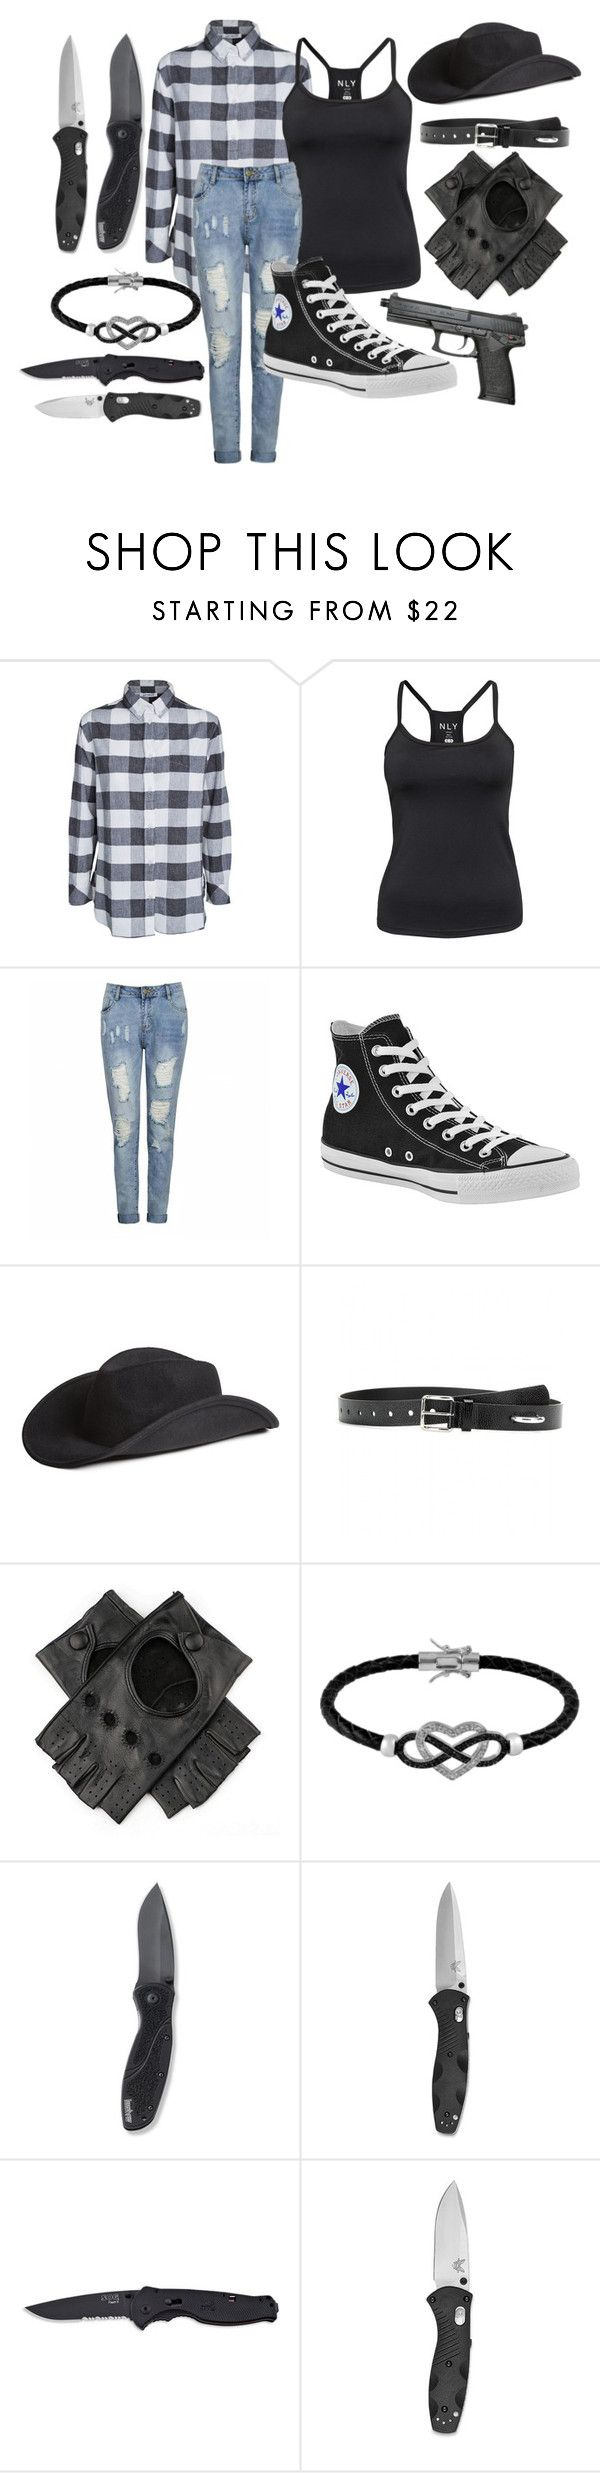 """Evan Rhee *The Walking Dead Fanfiction* Outfit 2"" by lauren-mossgotheridge ❤ liked on Polyvore featuring Gat Rimon, Ally Fashion, Converse, H&M, Acne Studios, Jewel Exclusive and Kershaw"